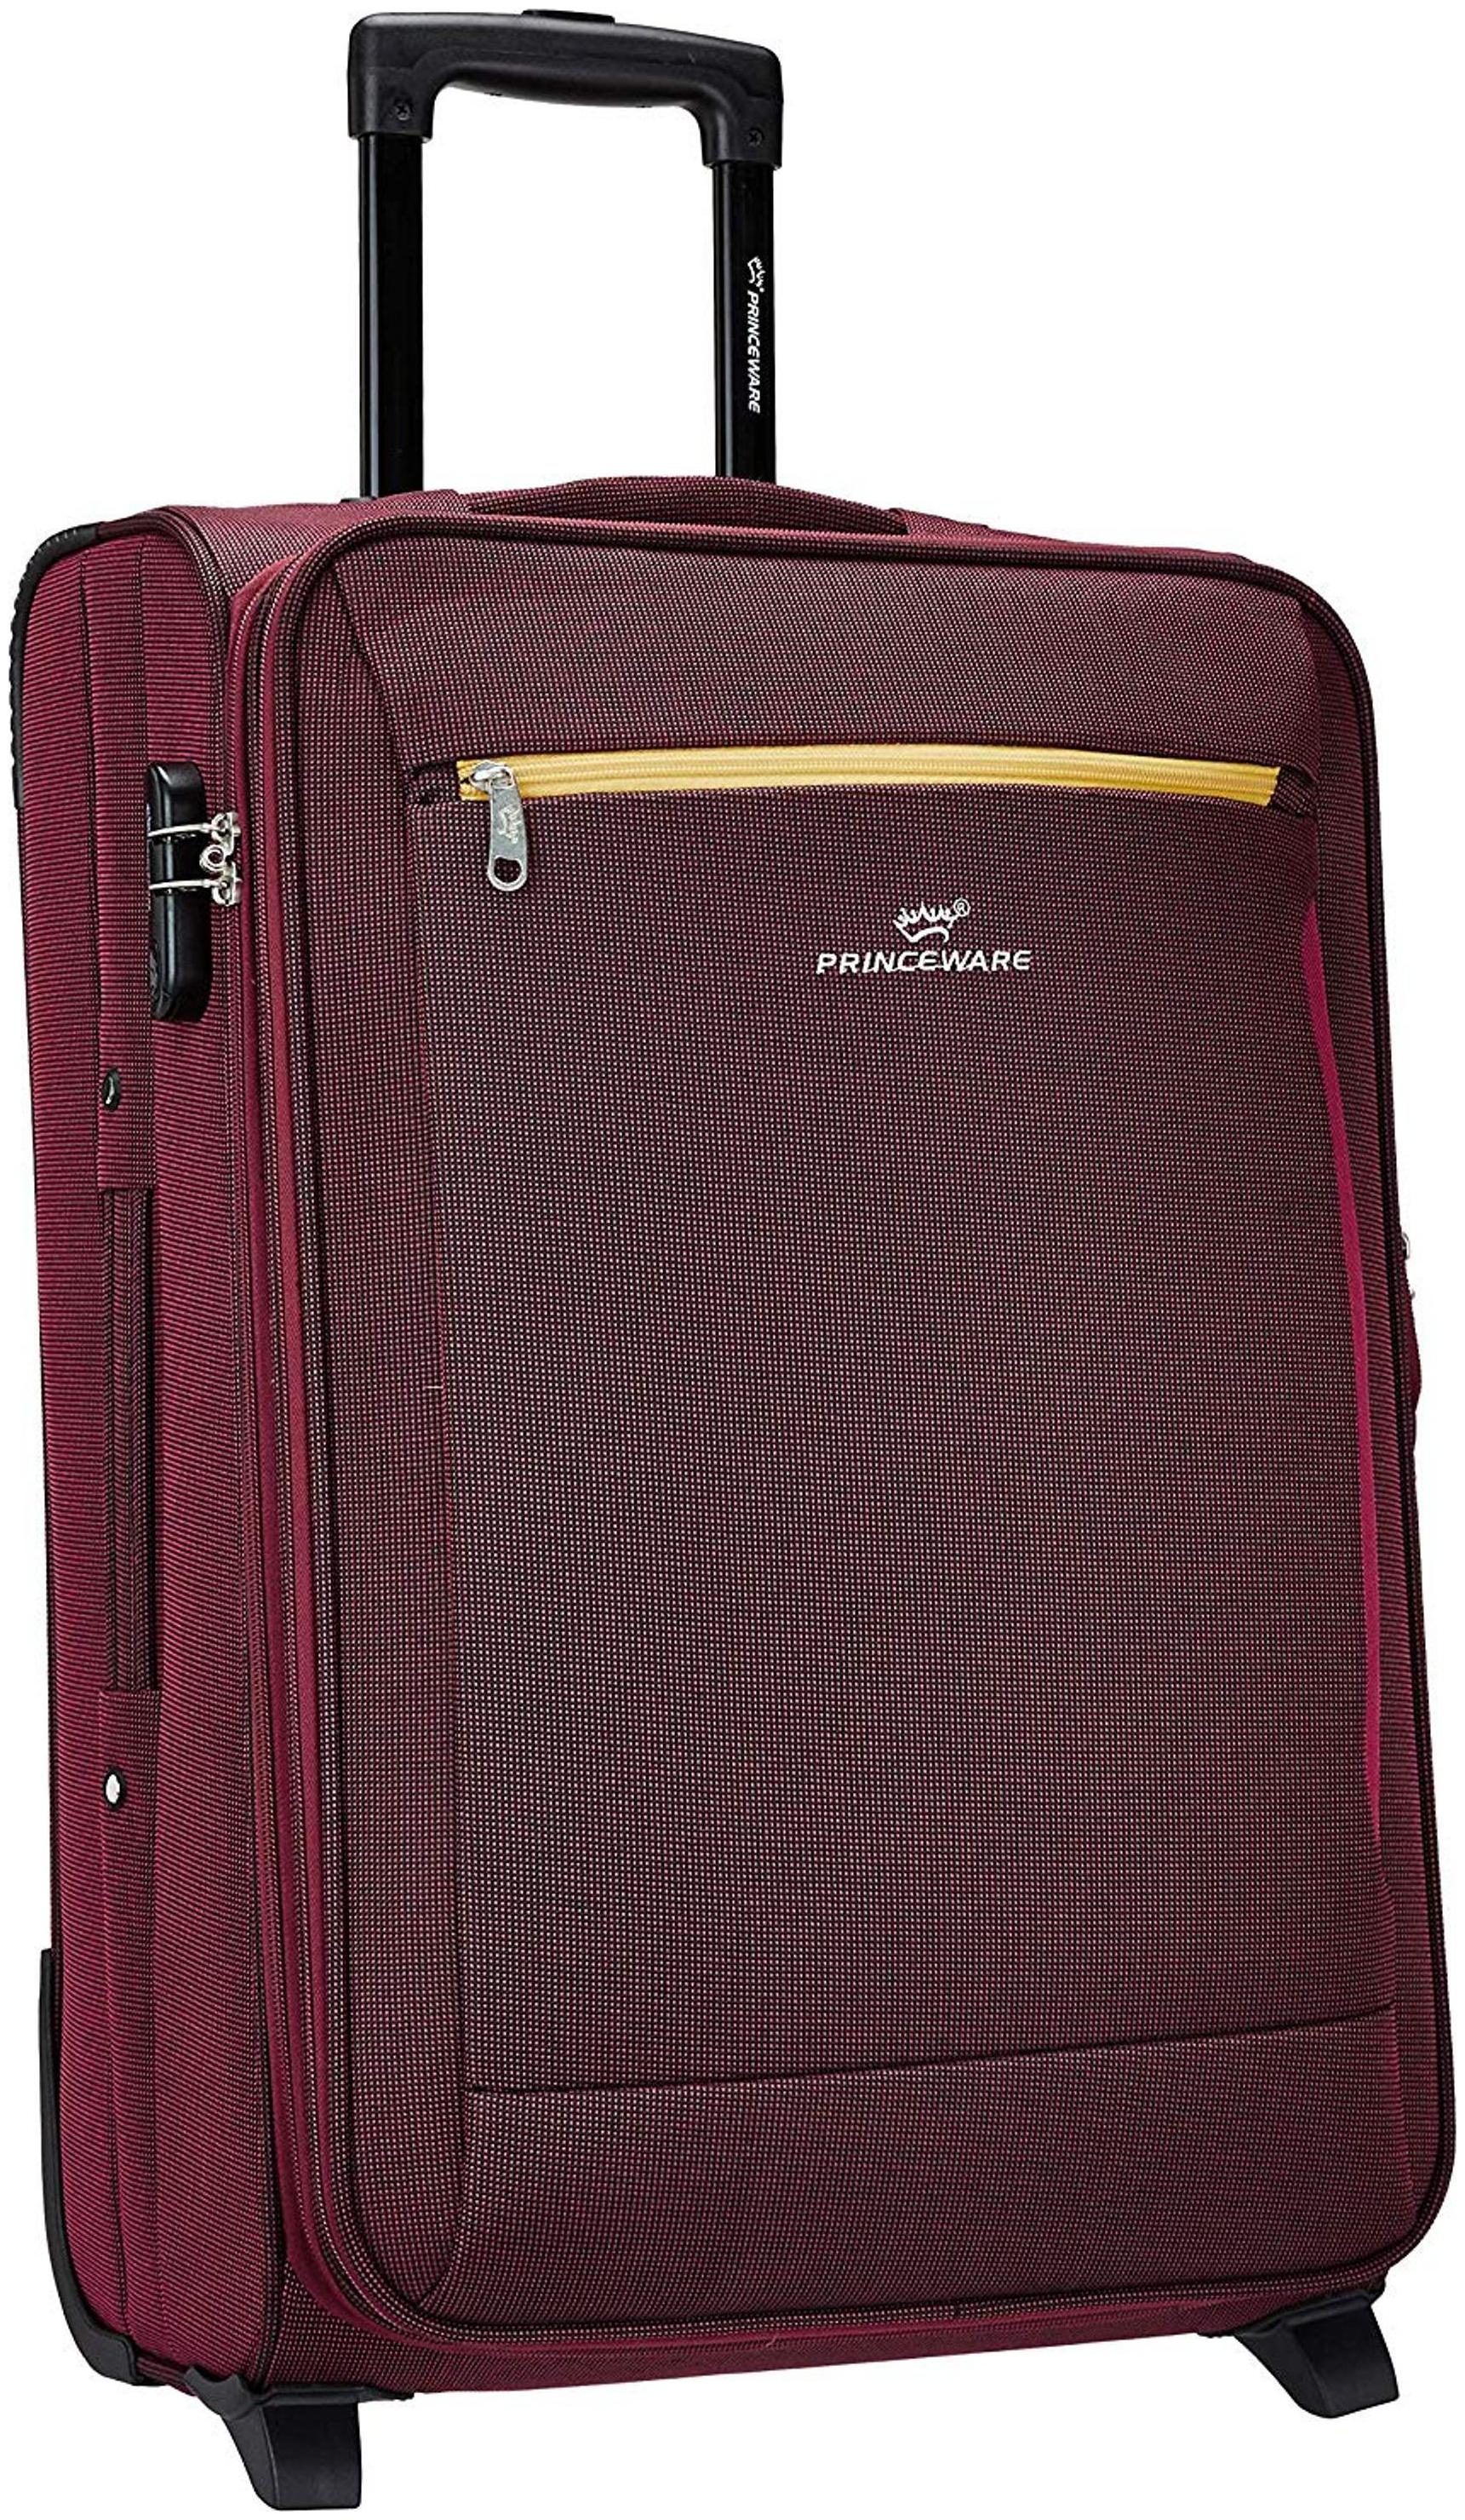 Pronto Cabin Size Soft Luggage Bag   Red , 2 Wheels